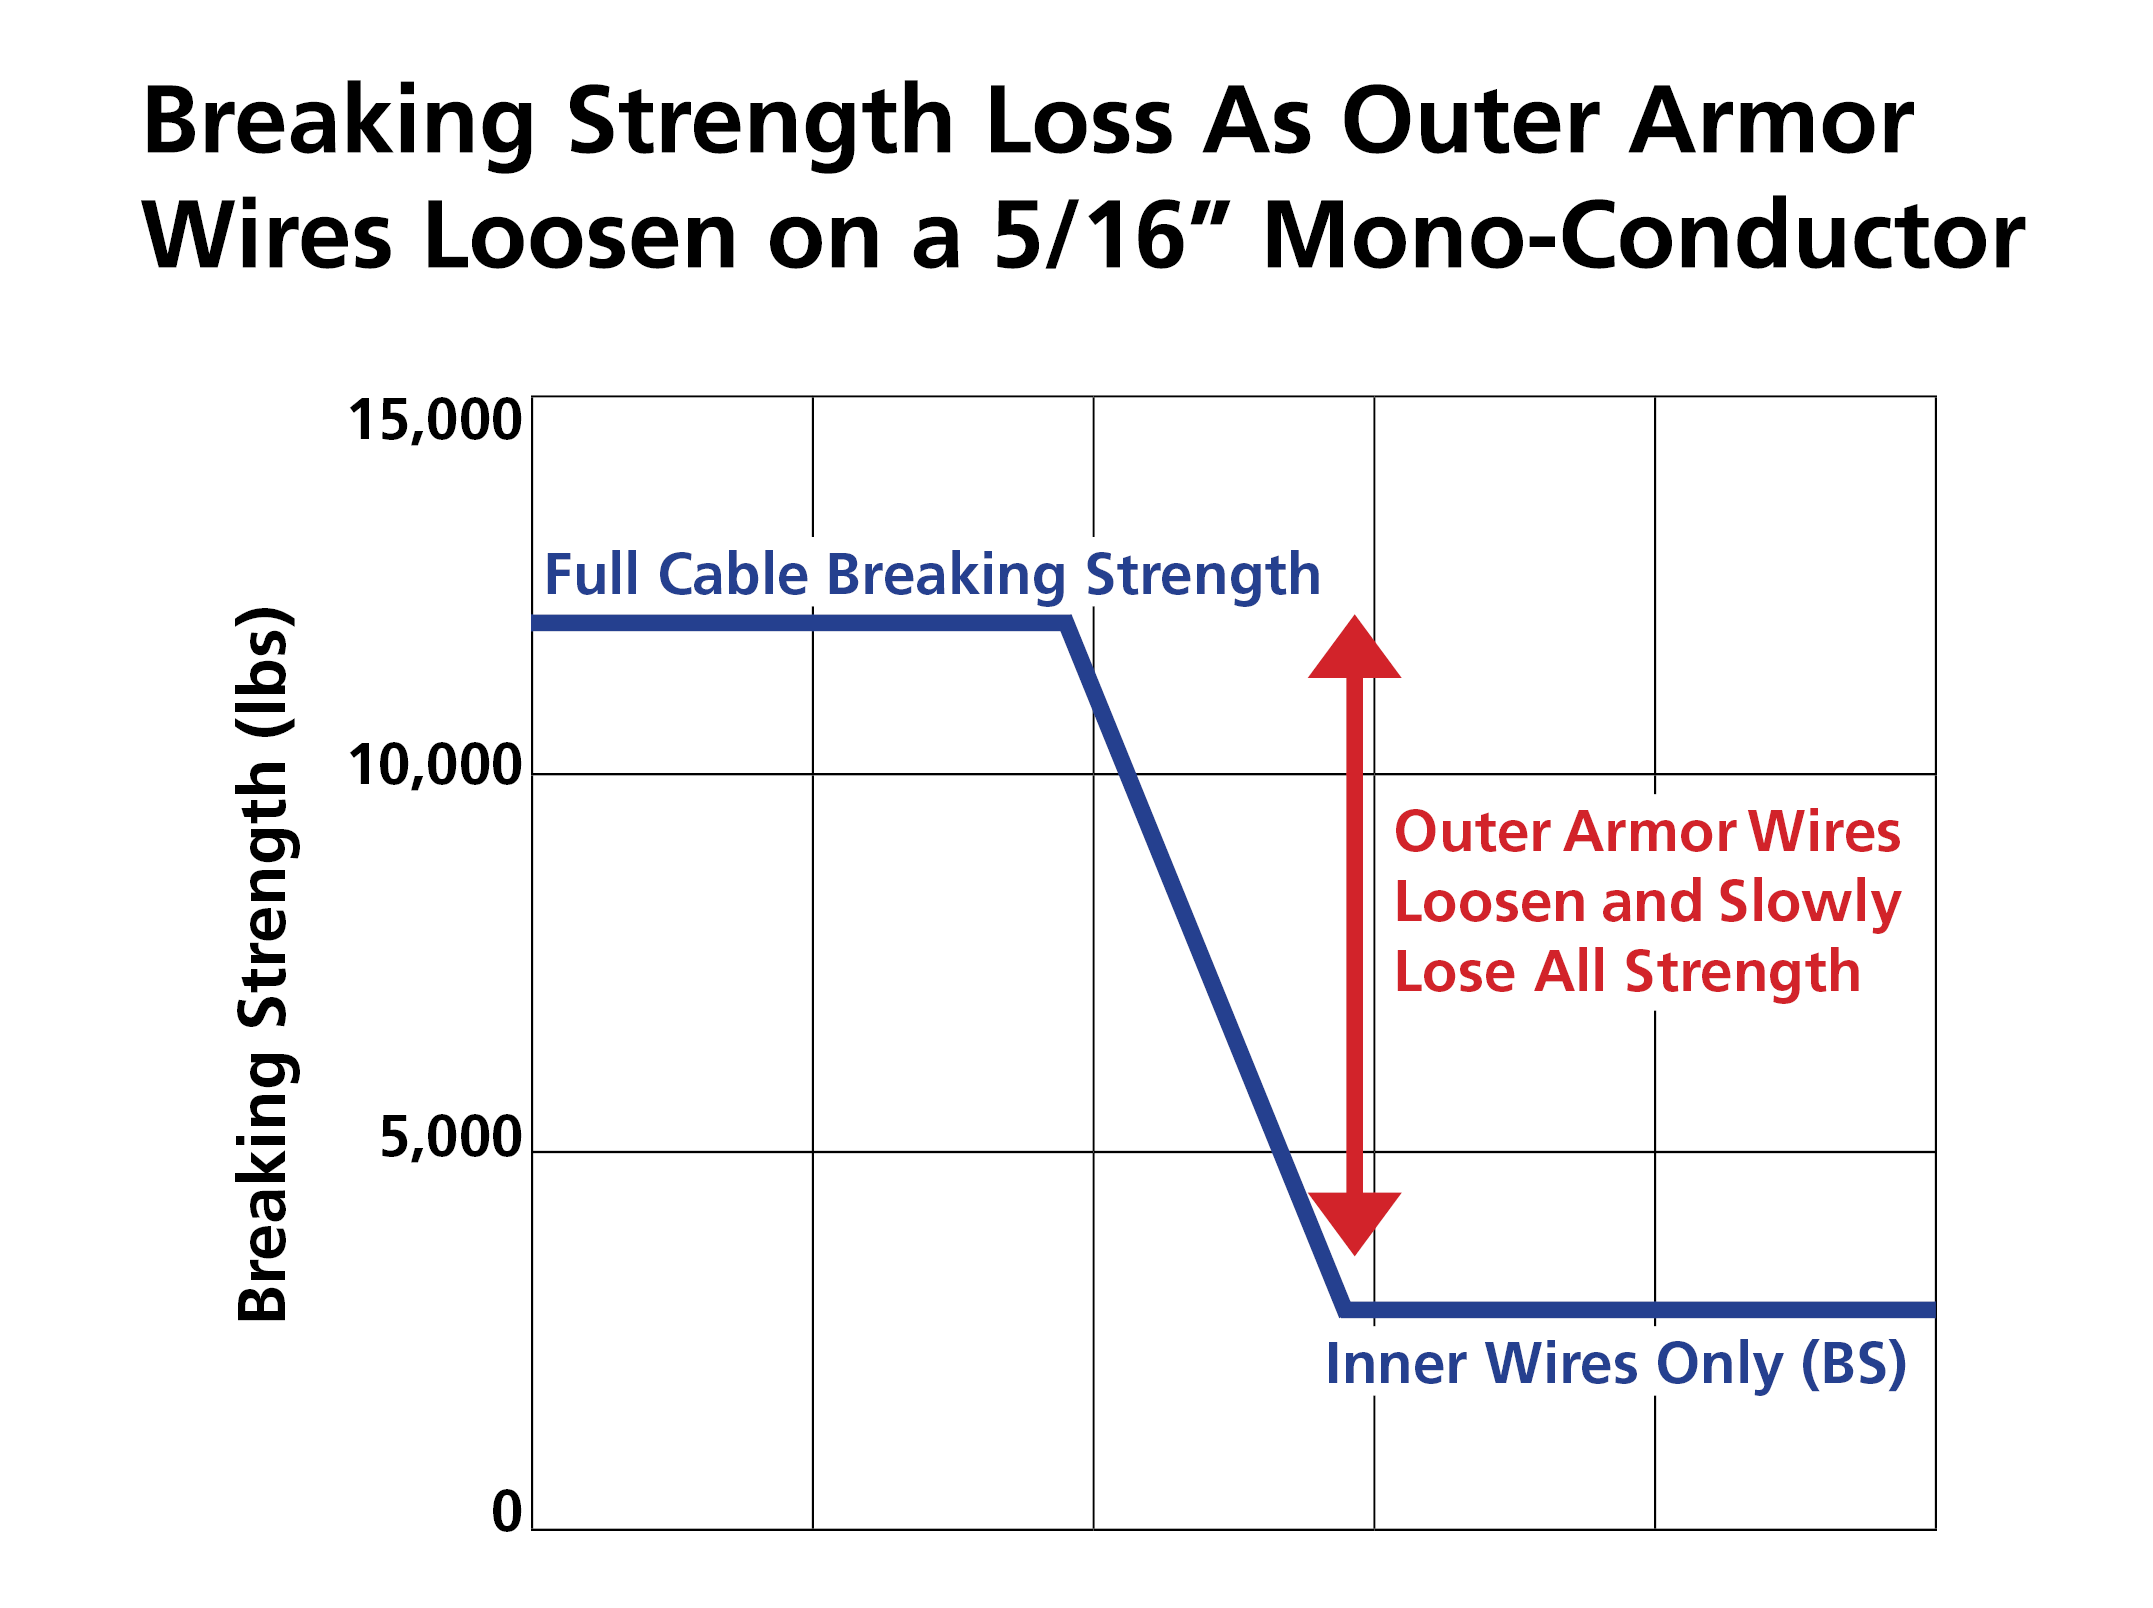 Breaking Strength Loss As Outer Armore Wires Loosen on a 5/16 inch Mono-Conductor